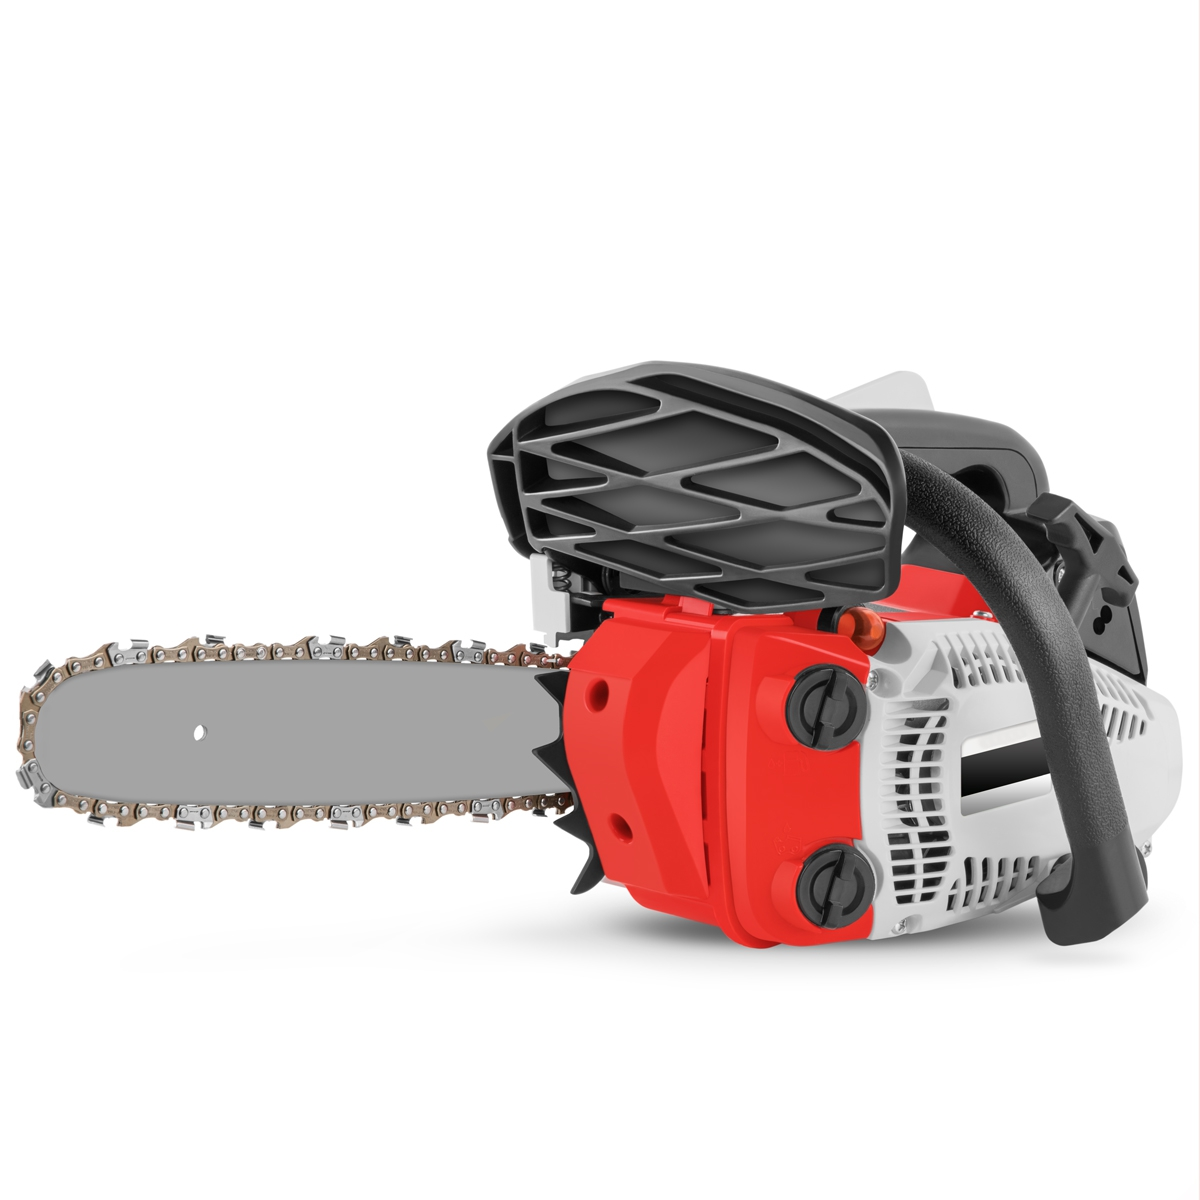 "Gasoline Chainsaw 24,5cc 1,4cv Sword 10 ""light Pruning And Powerful"